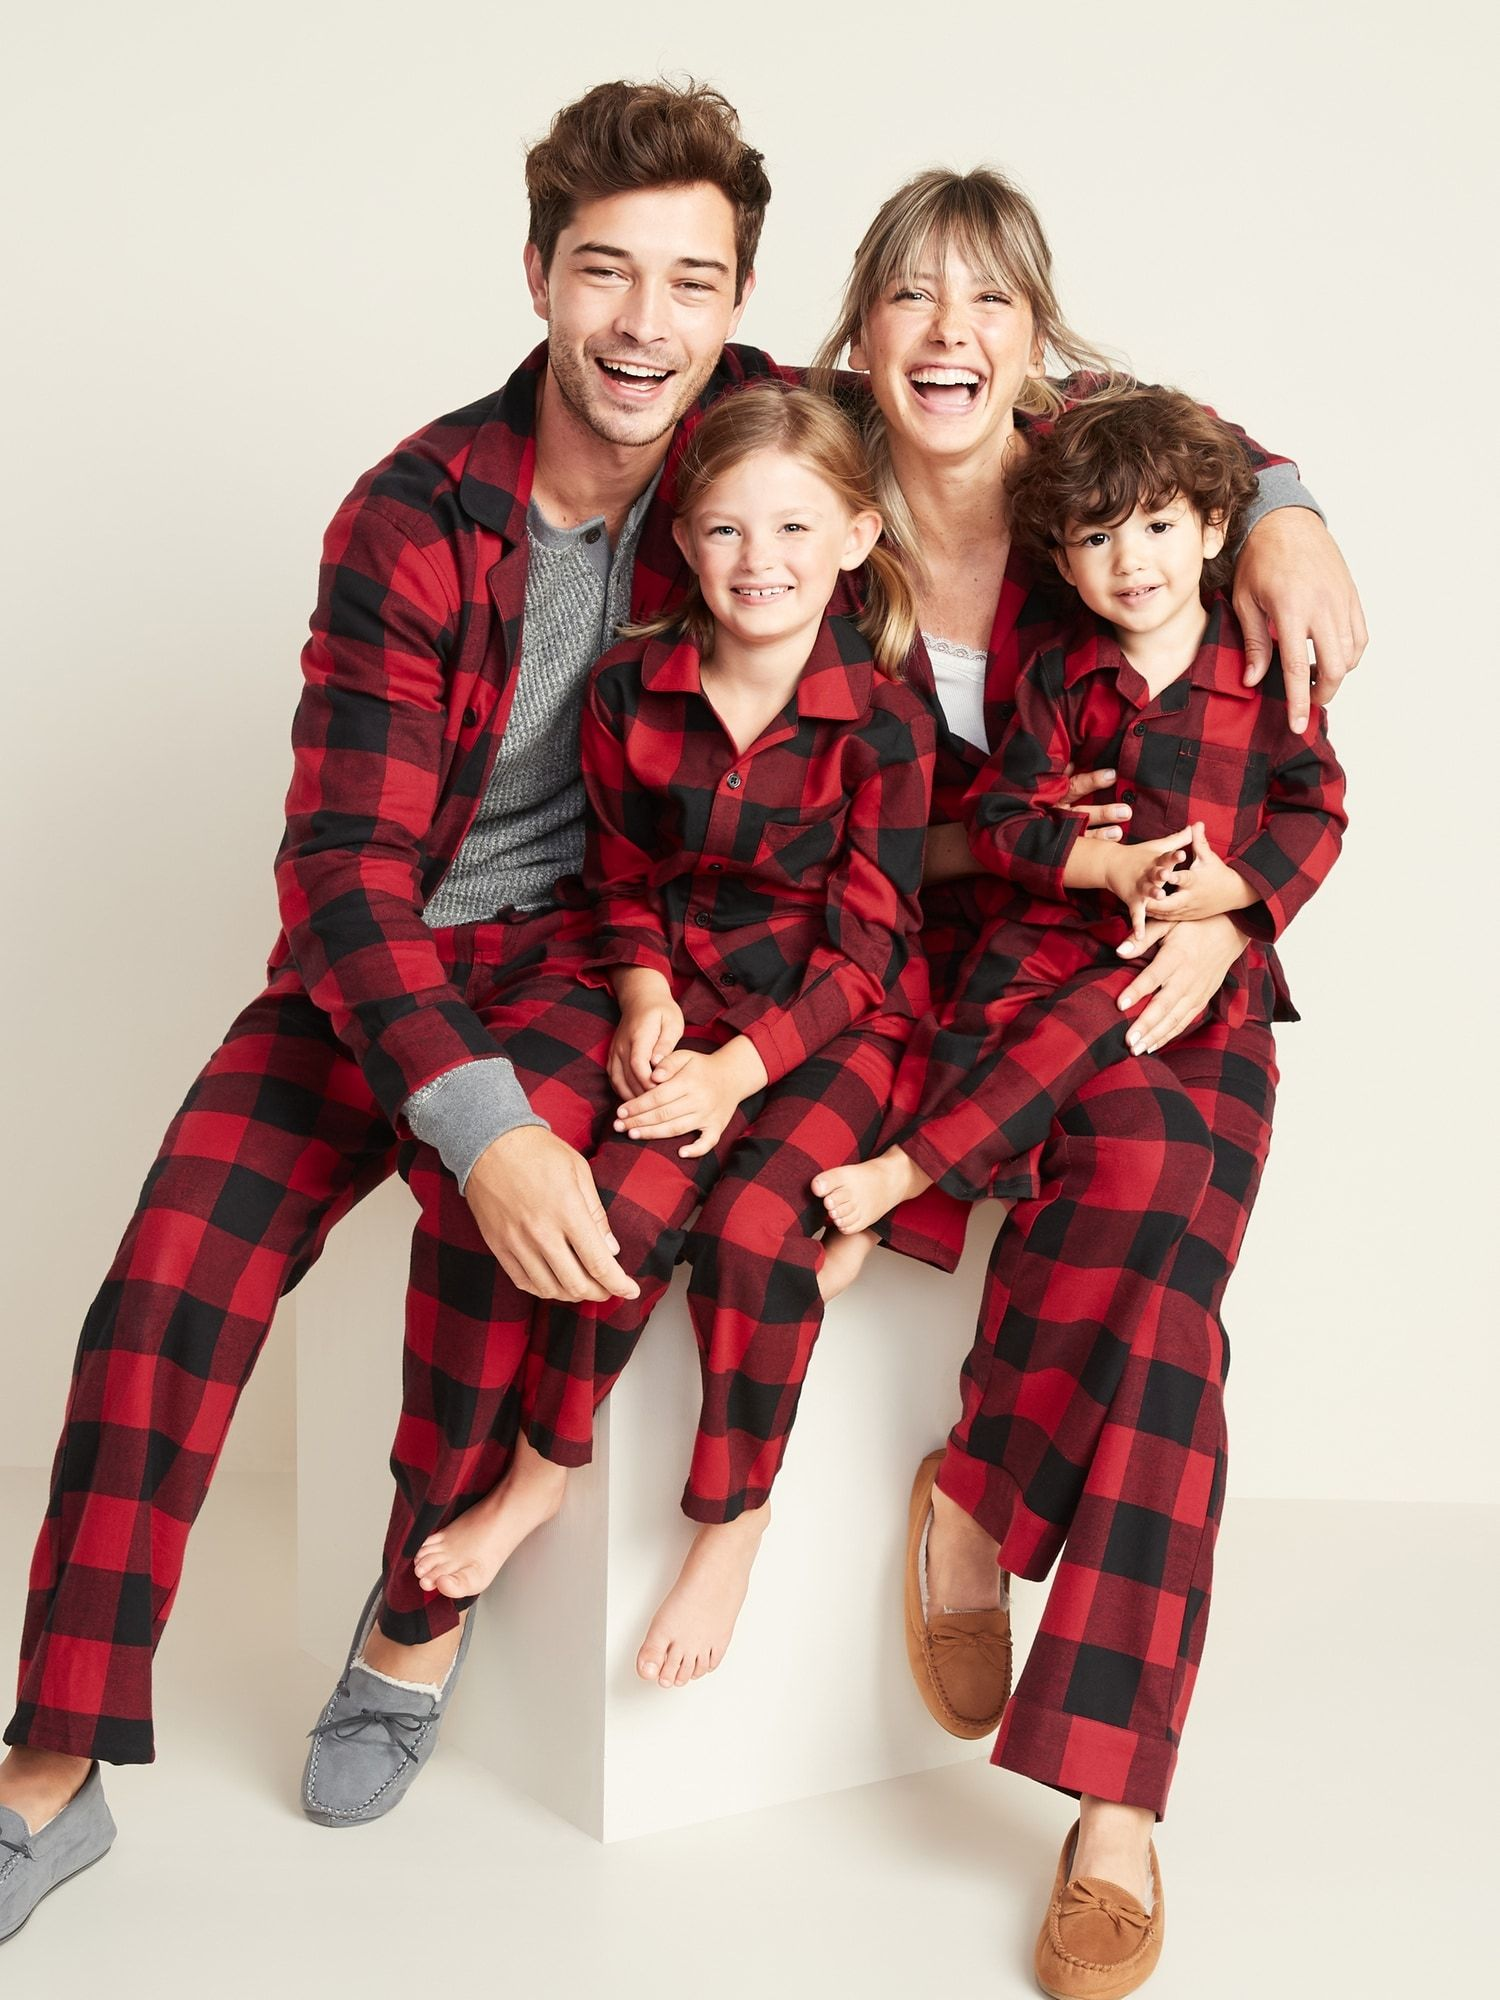 Pin by Tracy Bear on Family Flannel pajama sets, Flannel